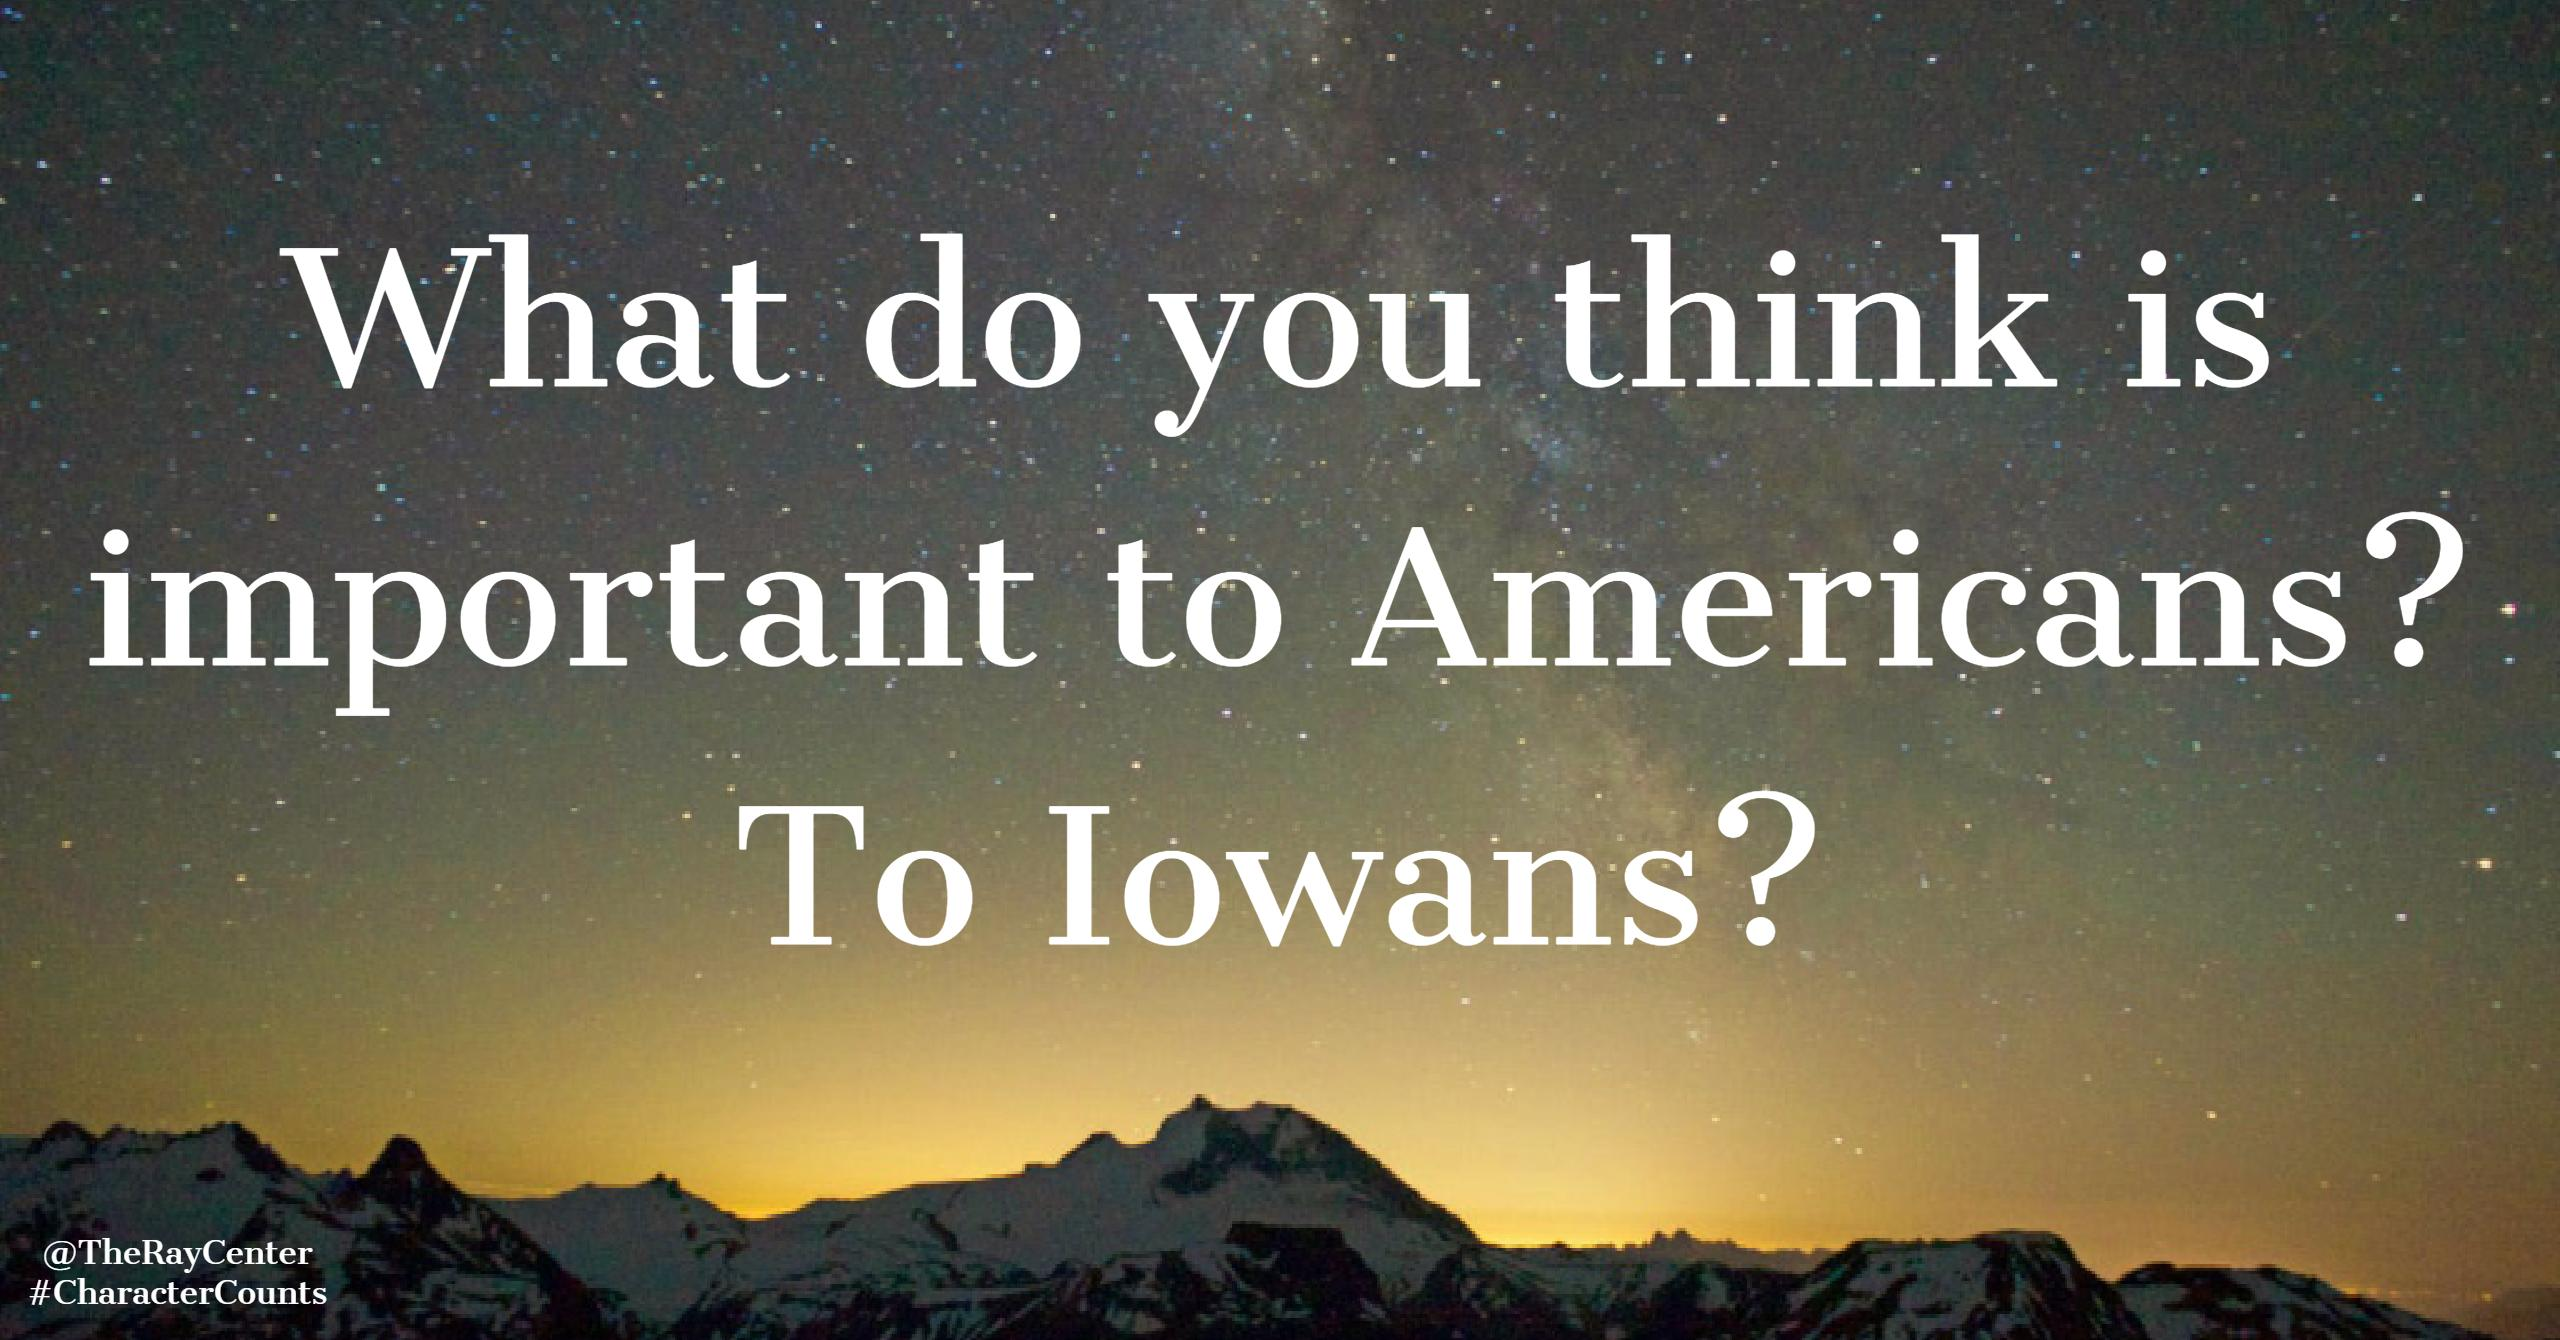 What do you think is important to Americans? To Iowans?